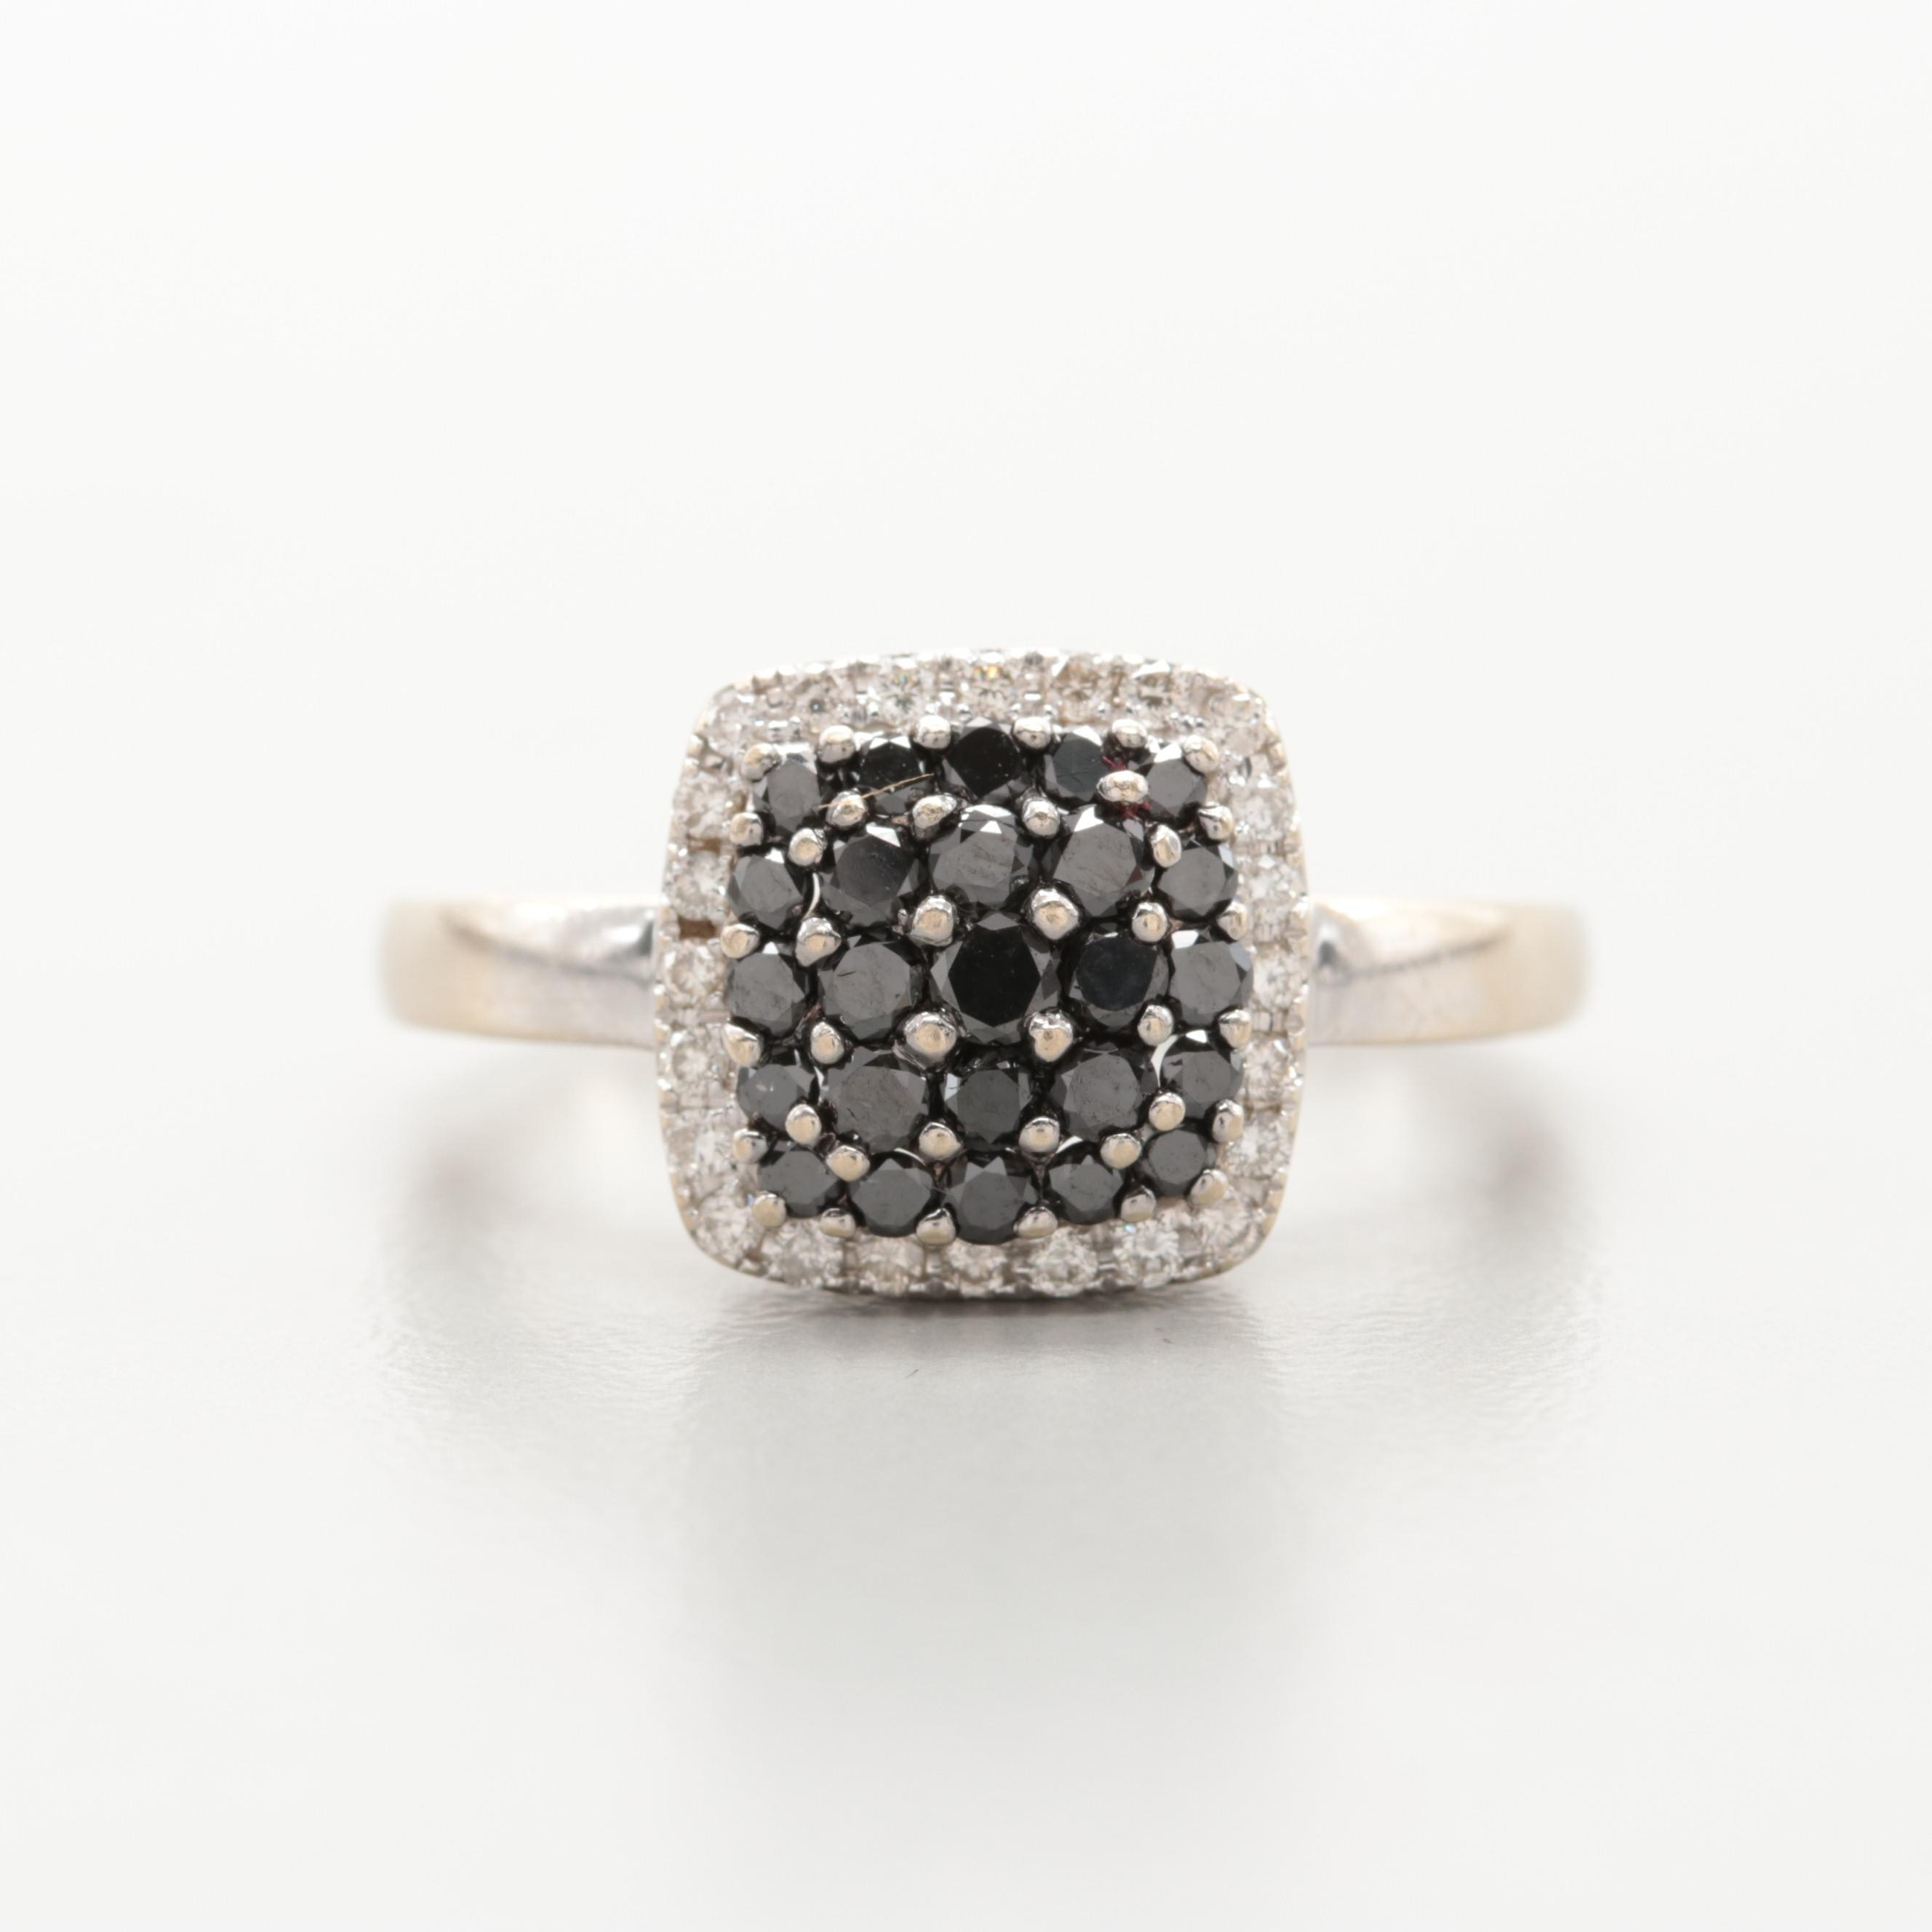 14K White Gold Diamond Ring Featuring Black Diamond Center